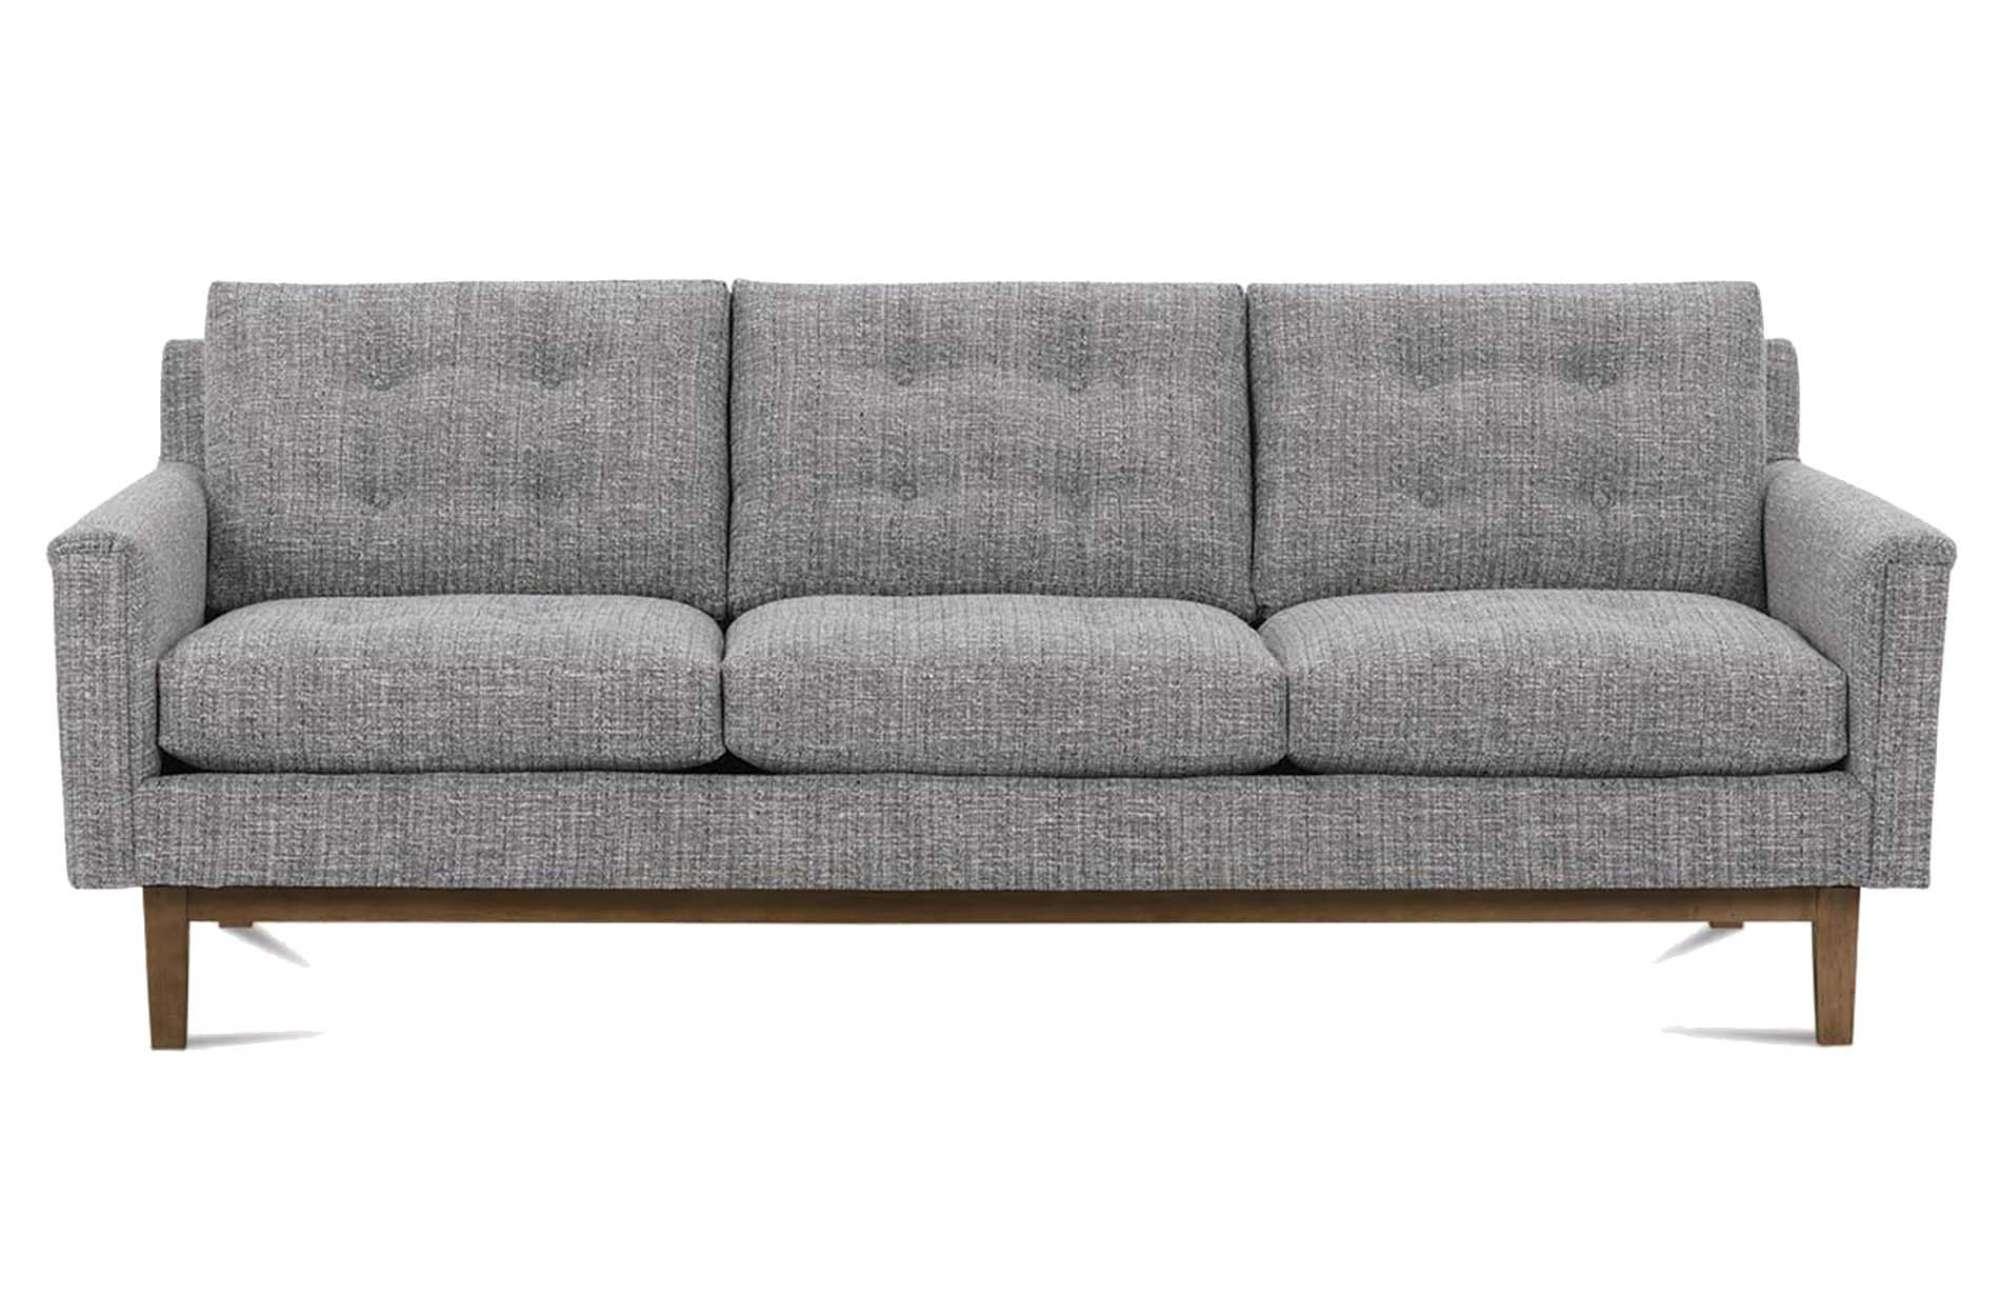 Slip Cover Couch | Rowe Nantucket Sofa | Rowe Furniture Slipcovers